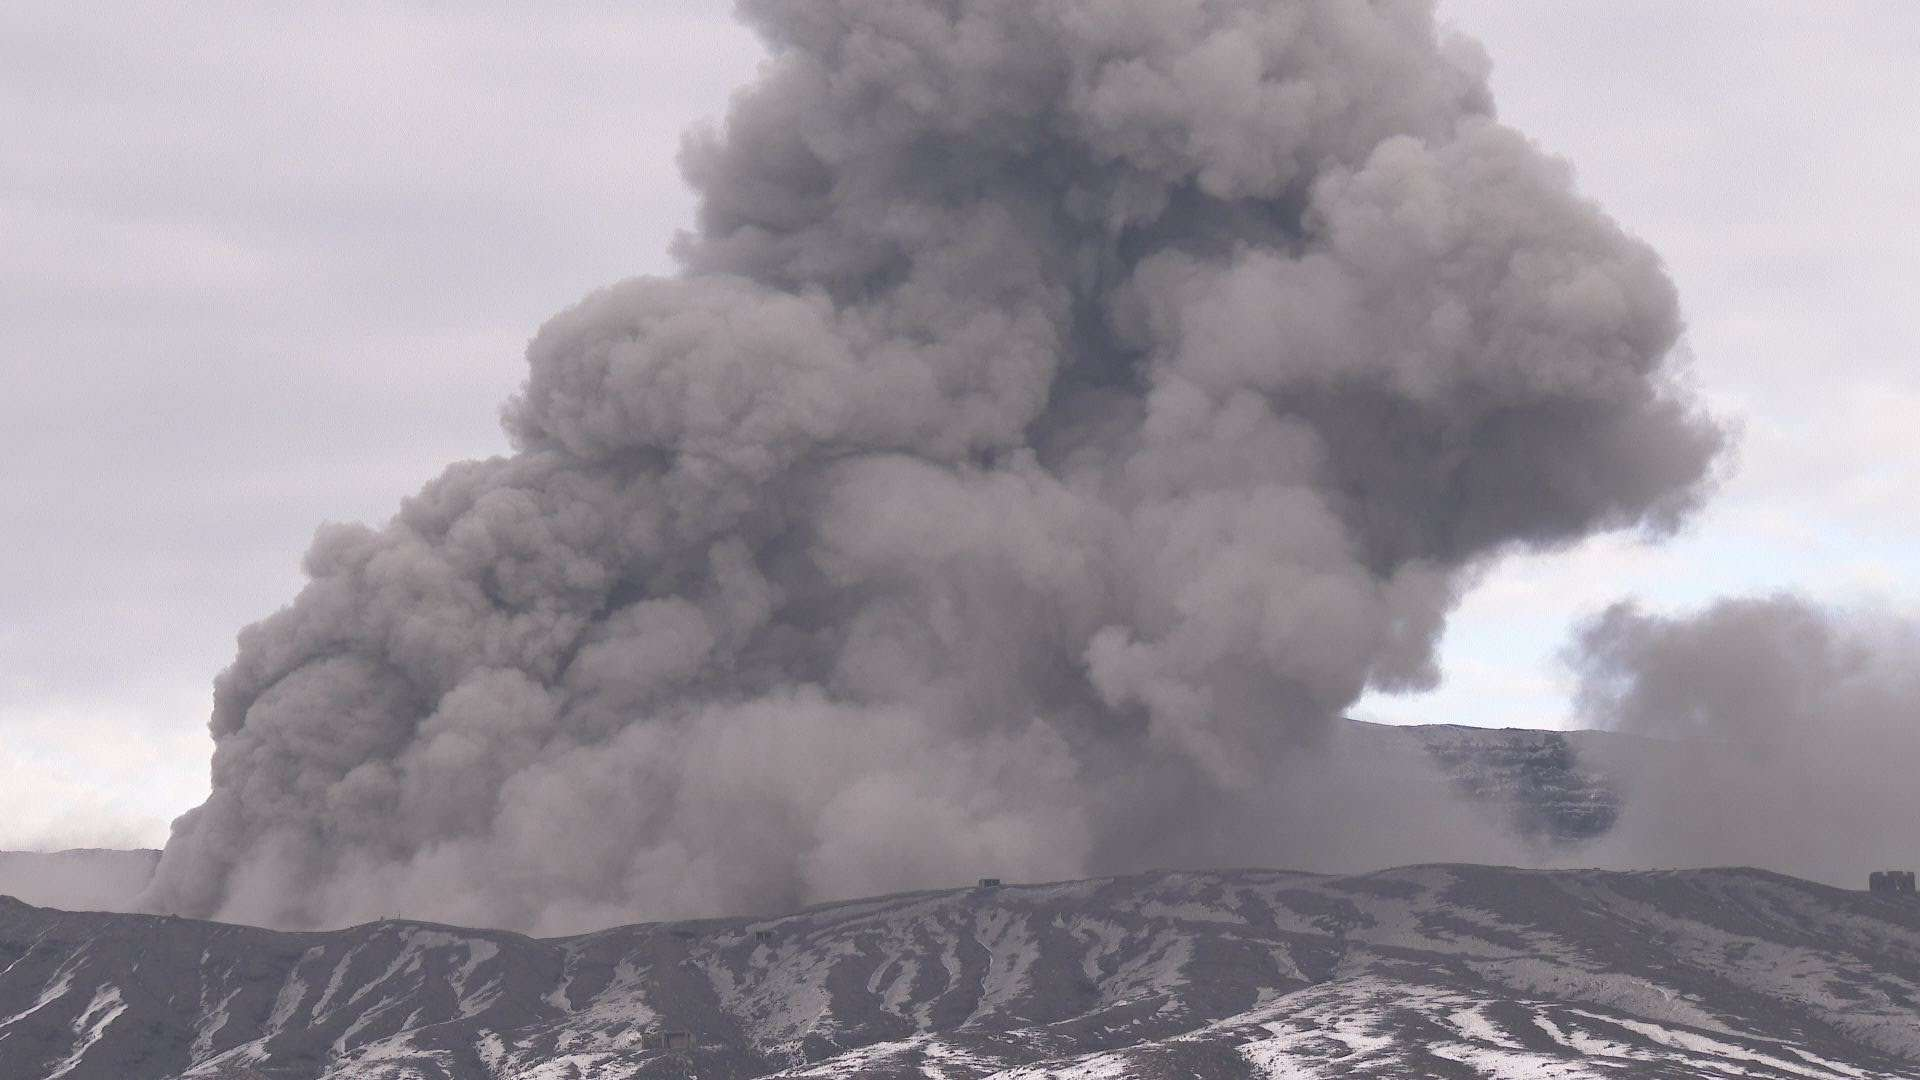 Black smoke continues to flow from Kelawia volcano in Hawaii